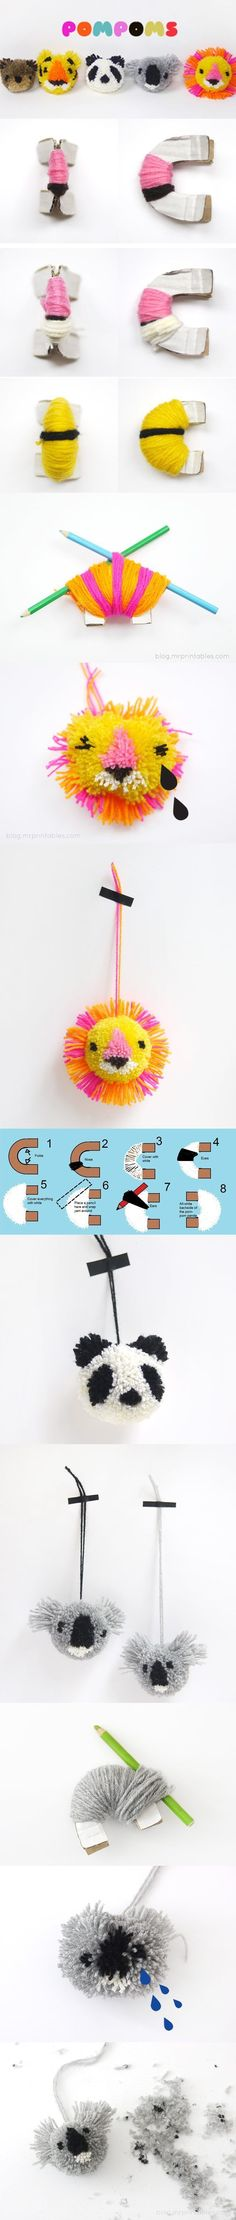 Pom Pom ideas and Inspiration - fashion and animal pom poms